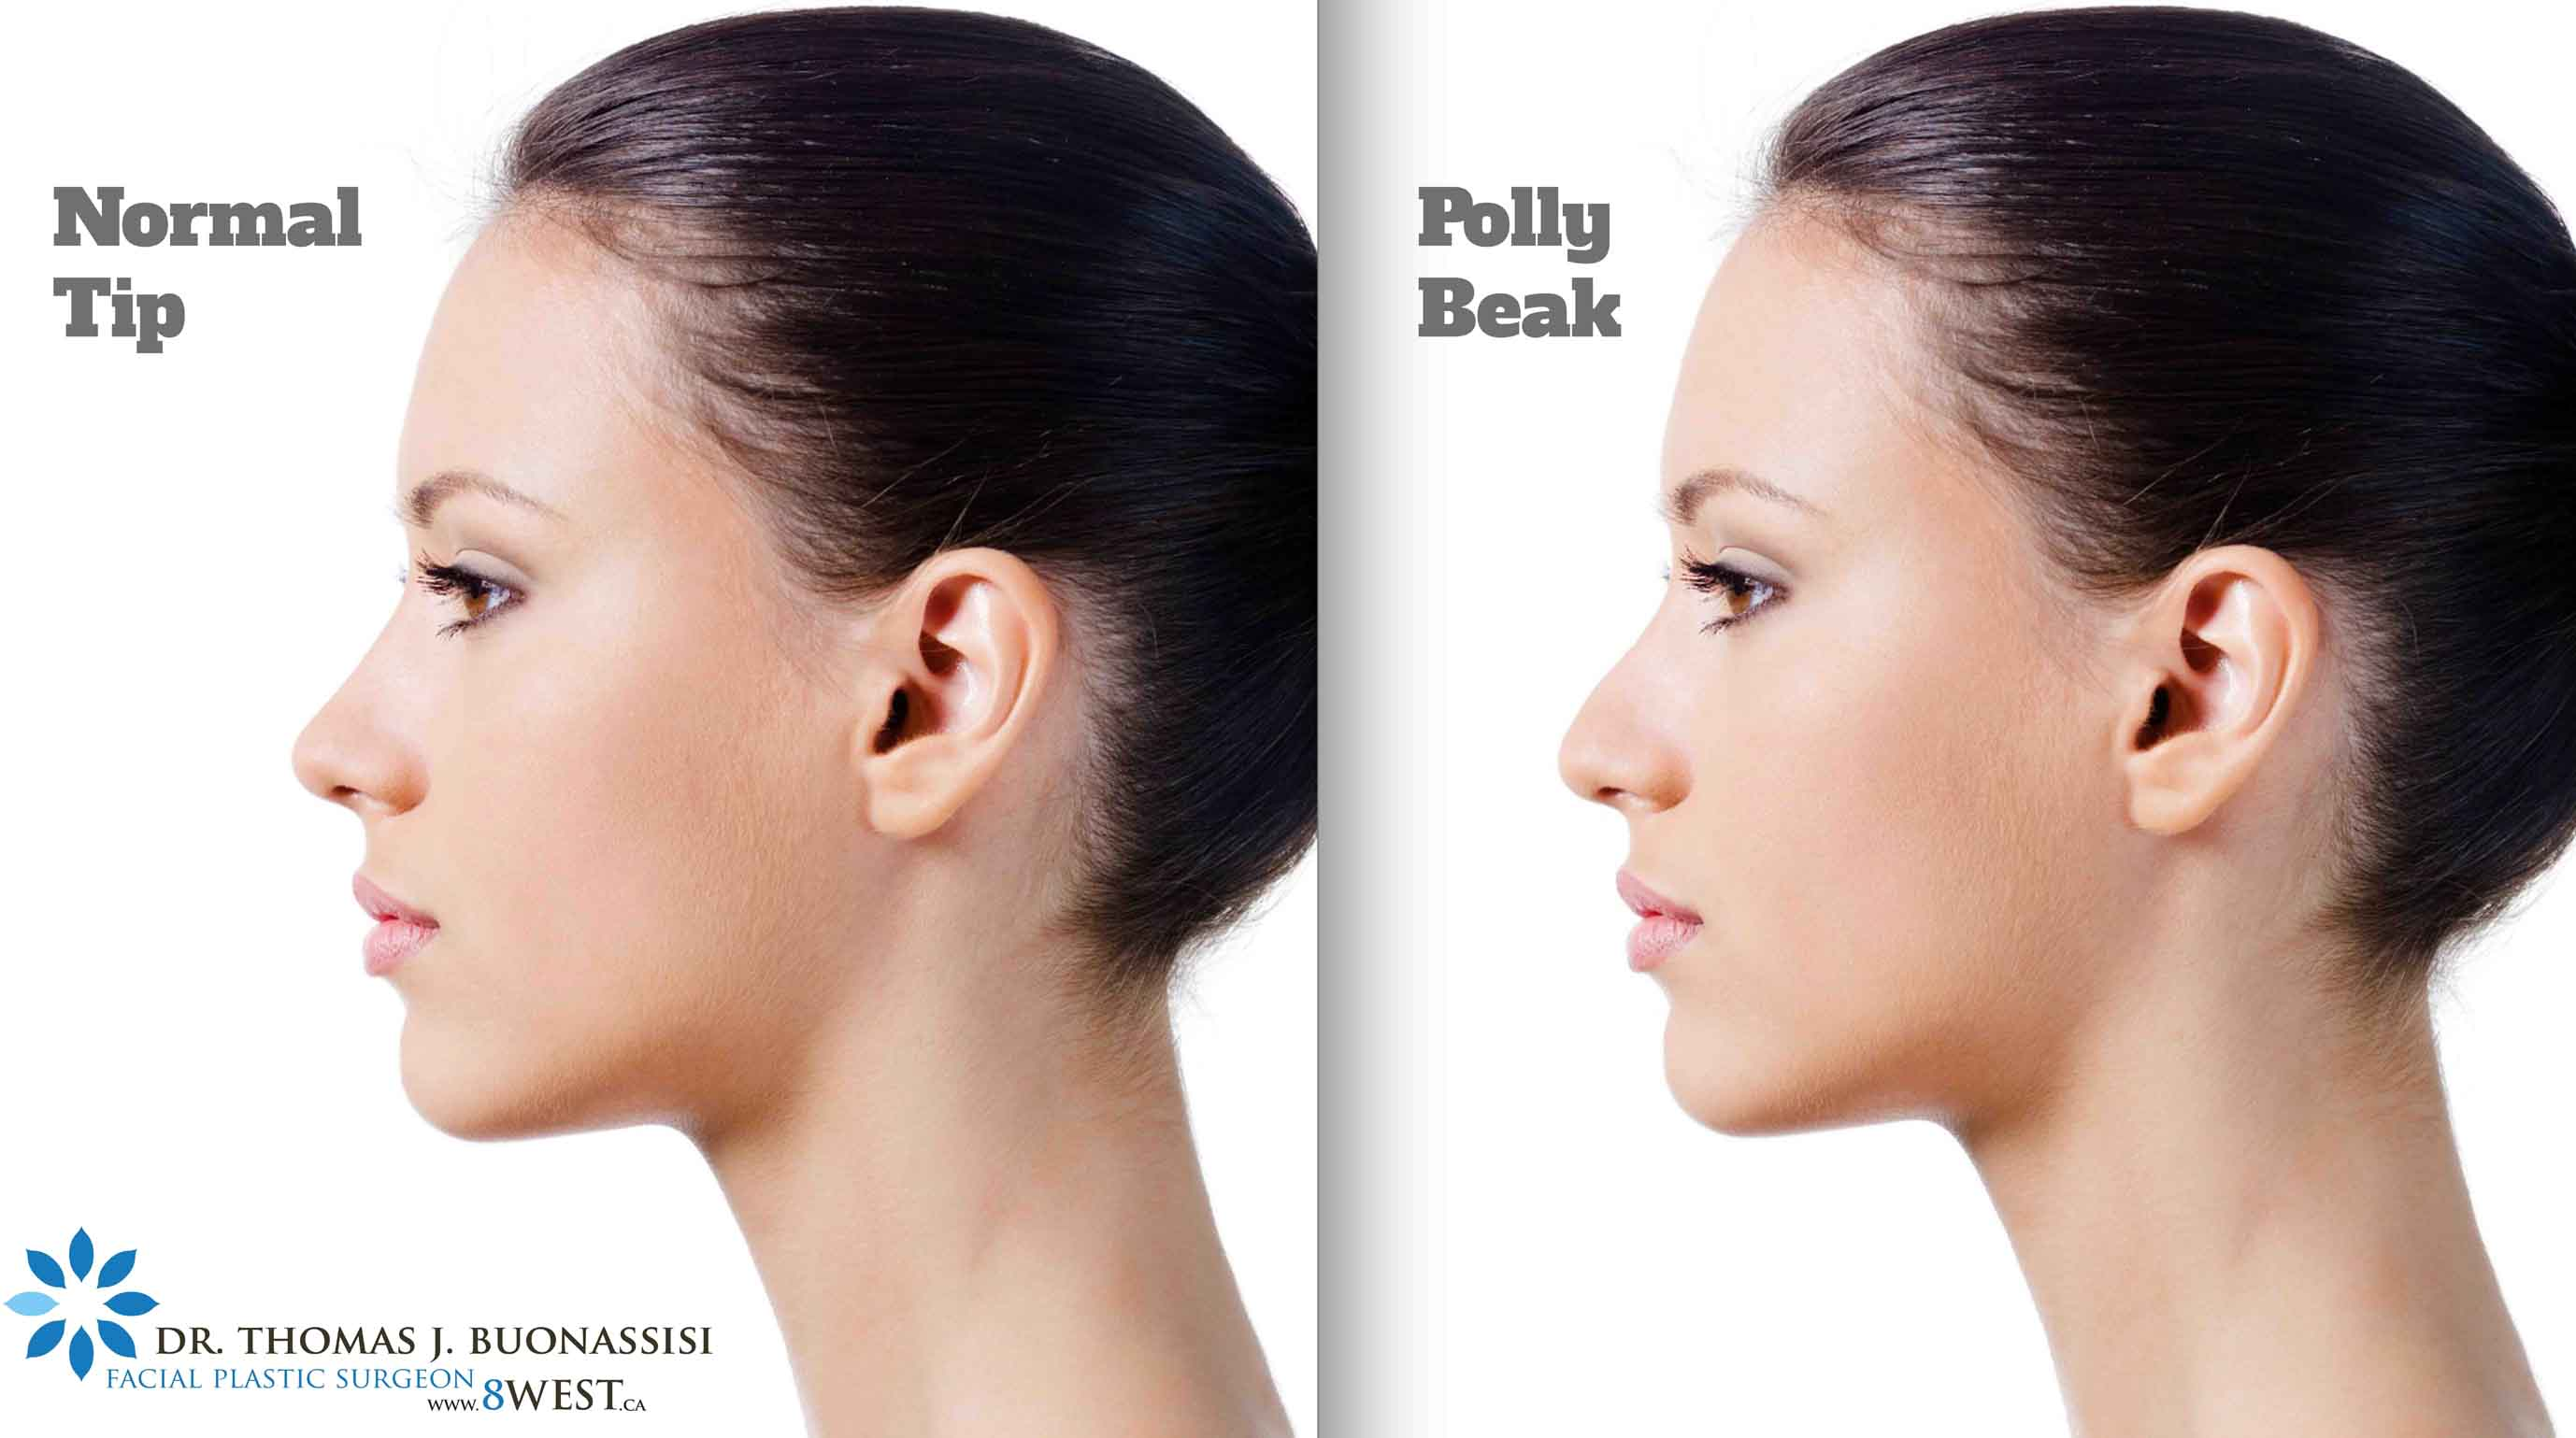 Rhinoplasty Specialist Dr. Buonassisi Releases A New Guide